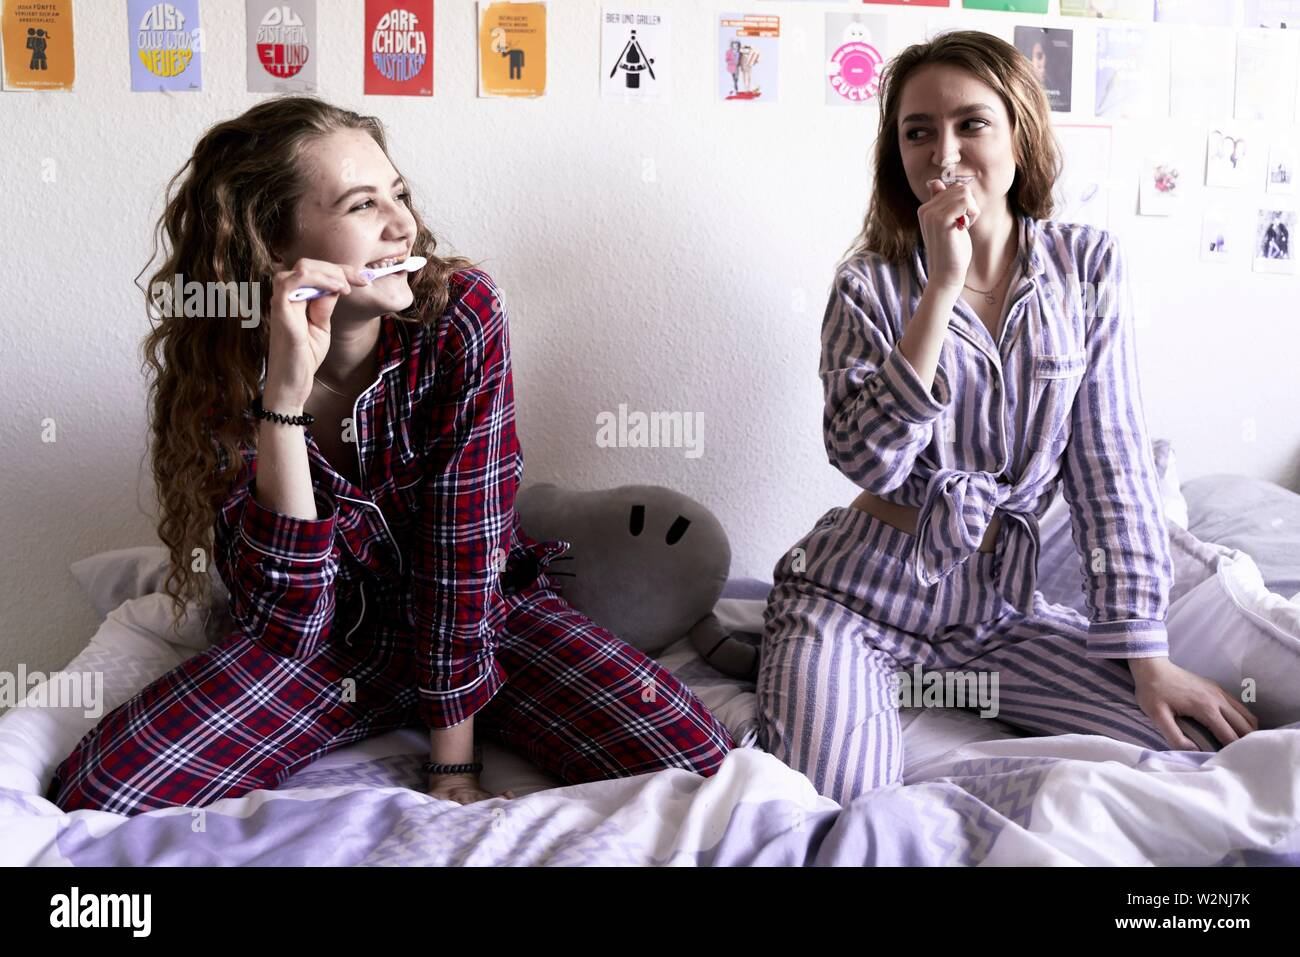 two young women in pyjamas brushing teeth while sitting on bed in bedroom - Stock Image